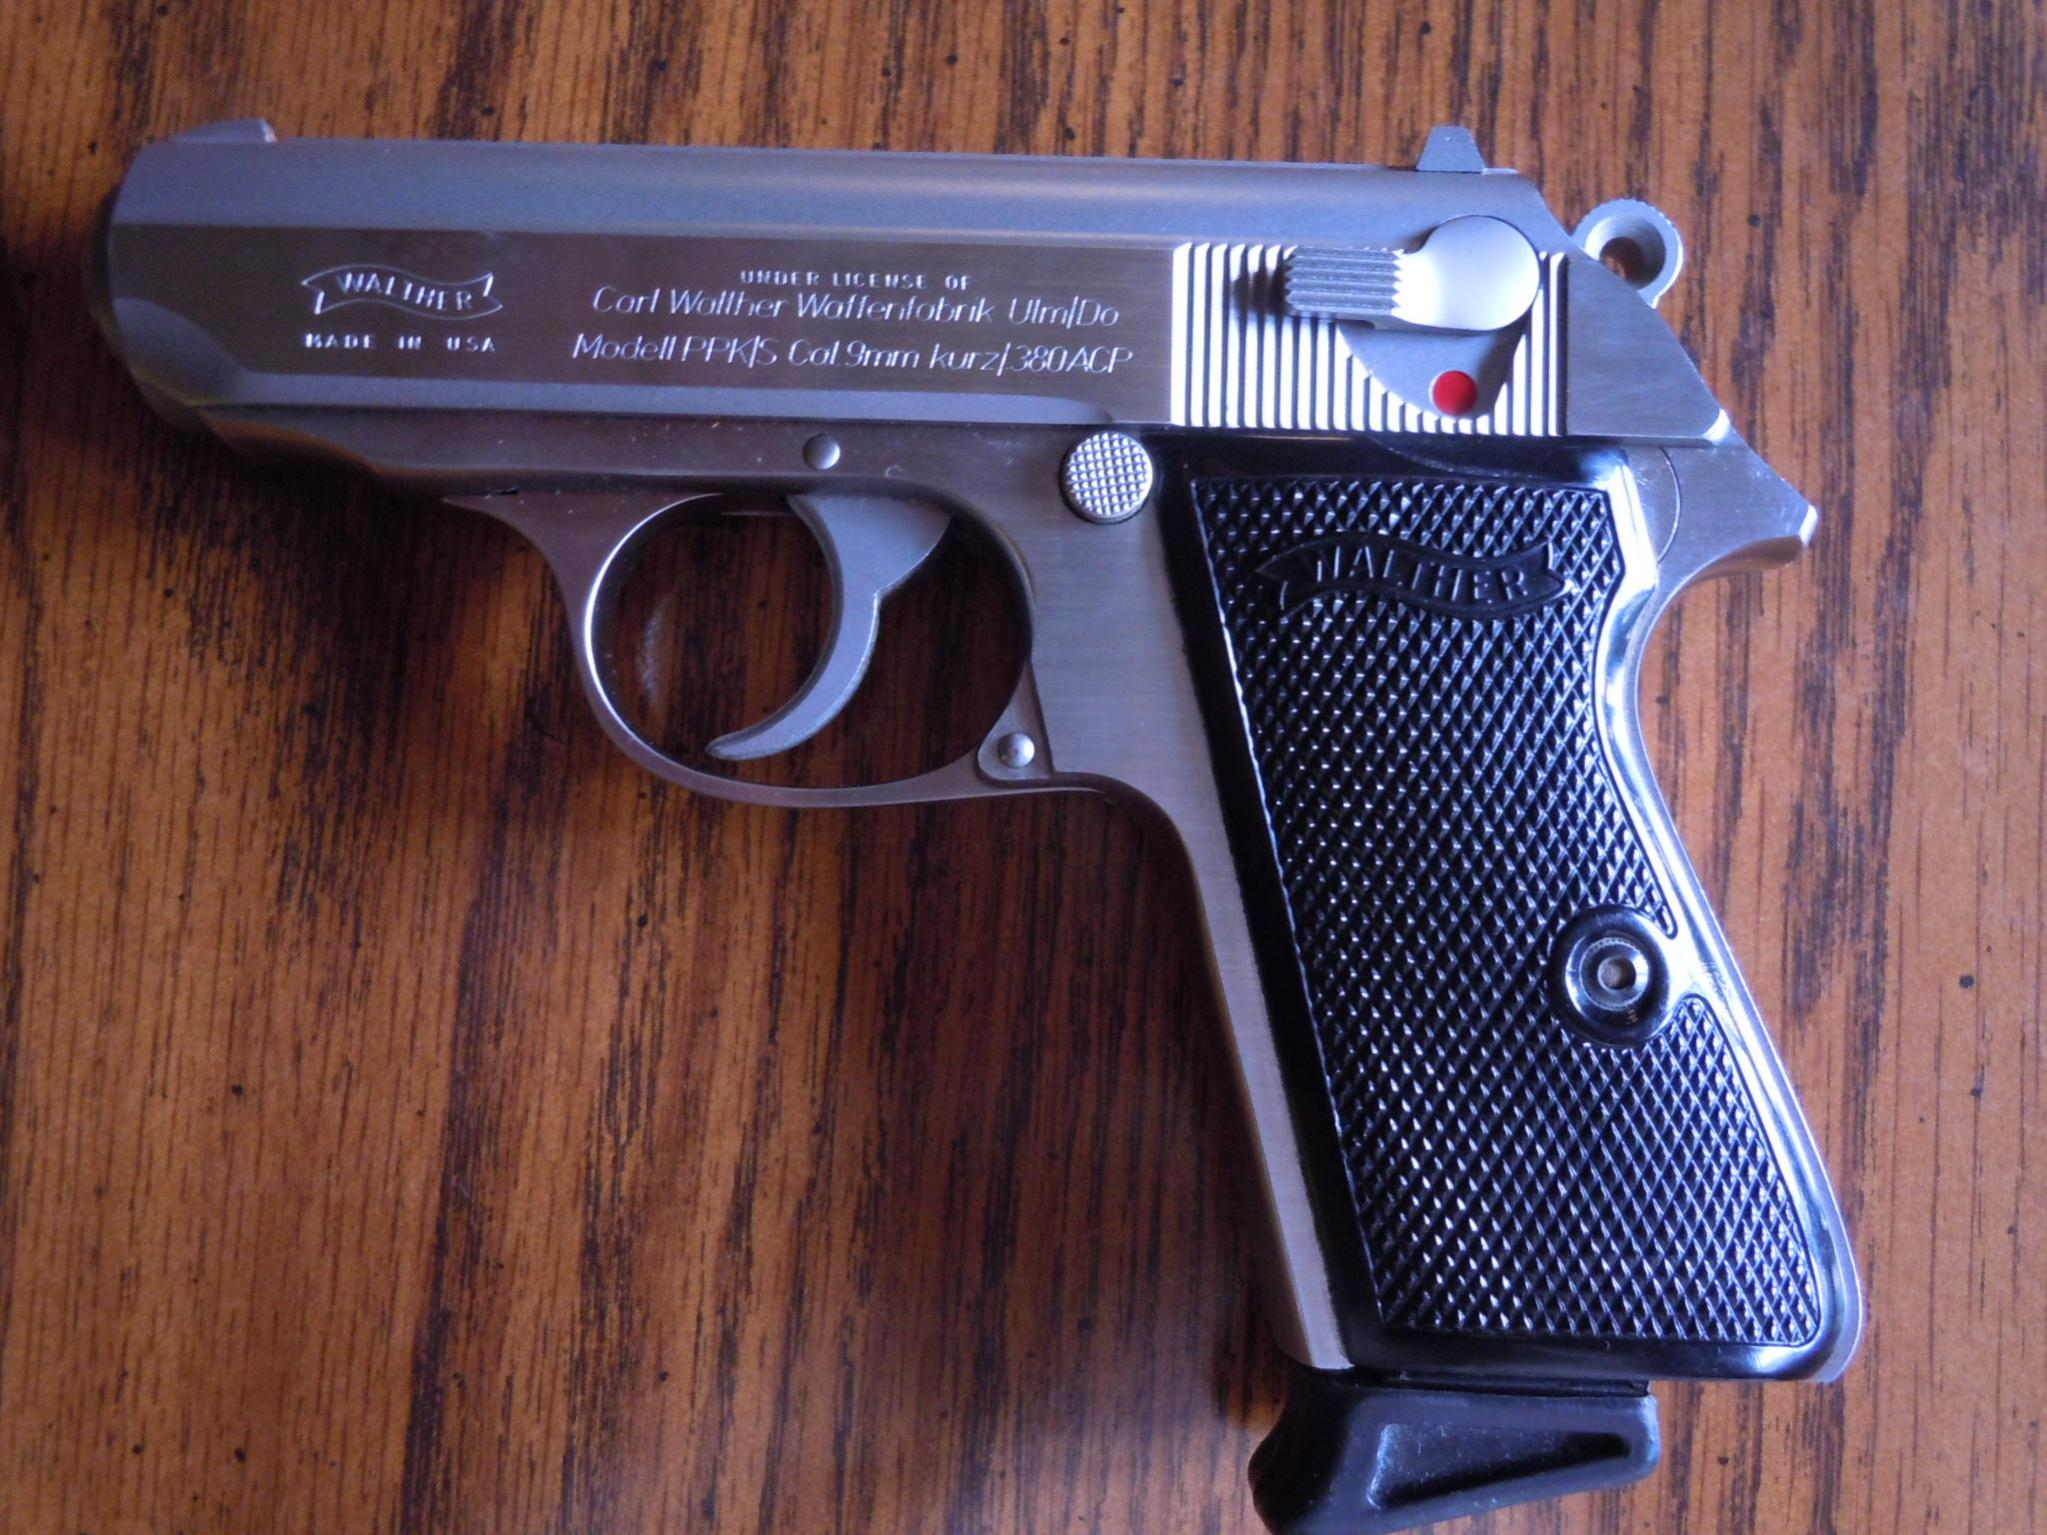 Interarms/Walther PPK/S-walther-2.jpg